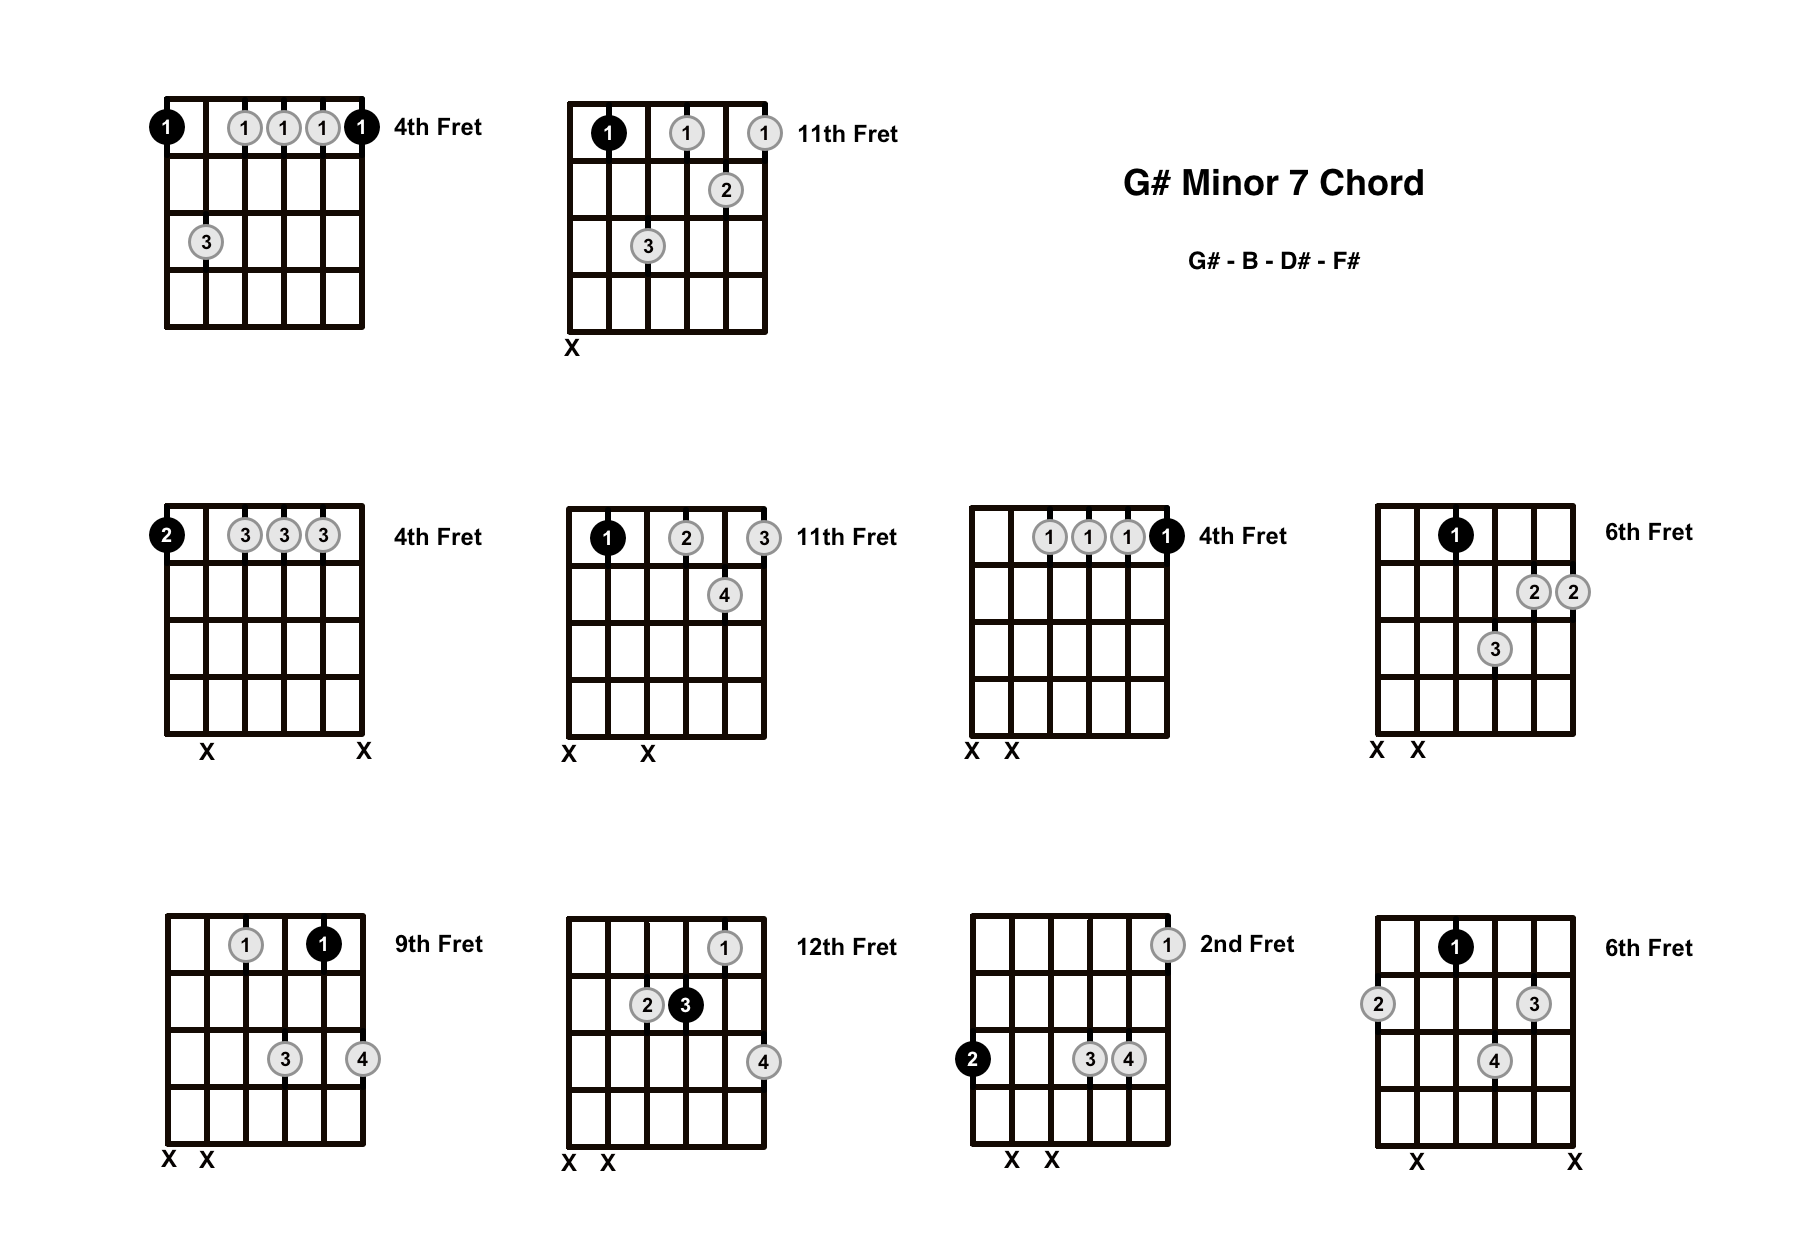 G#m7 Chord on the Guitar (G Sharp Minor 7) – Diagrams, Finger Positions, Theory